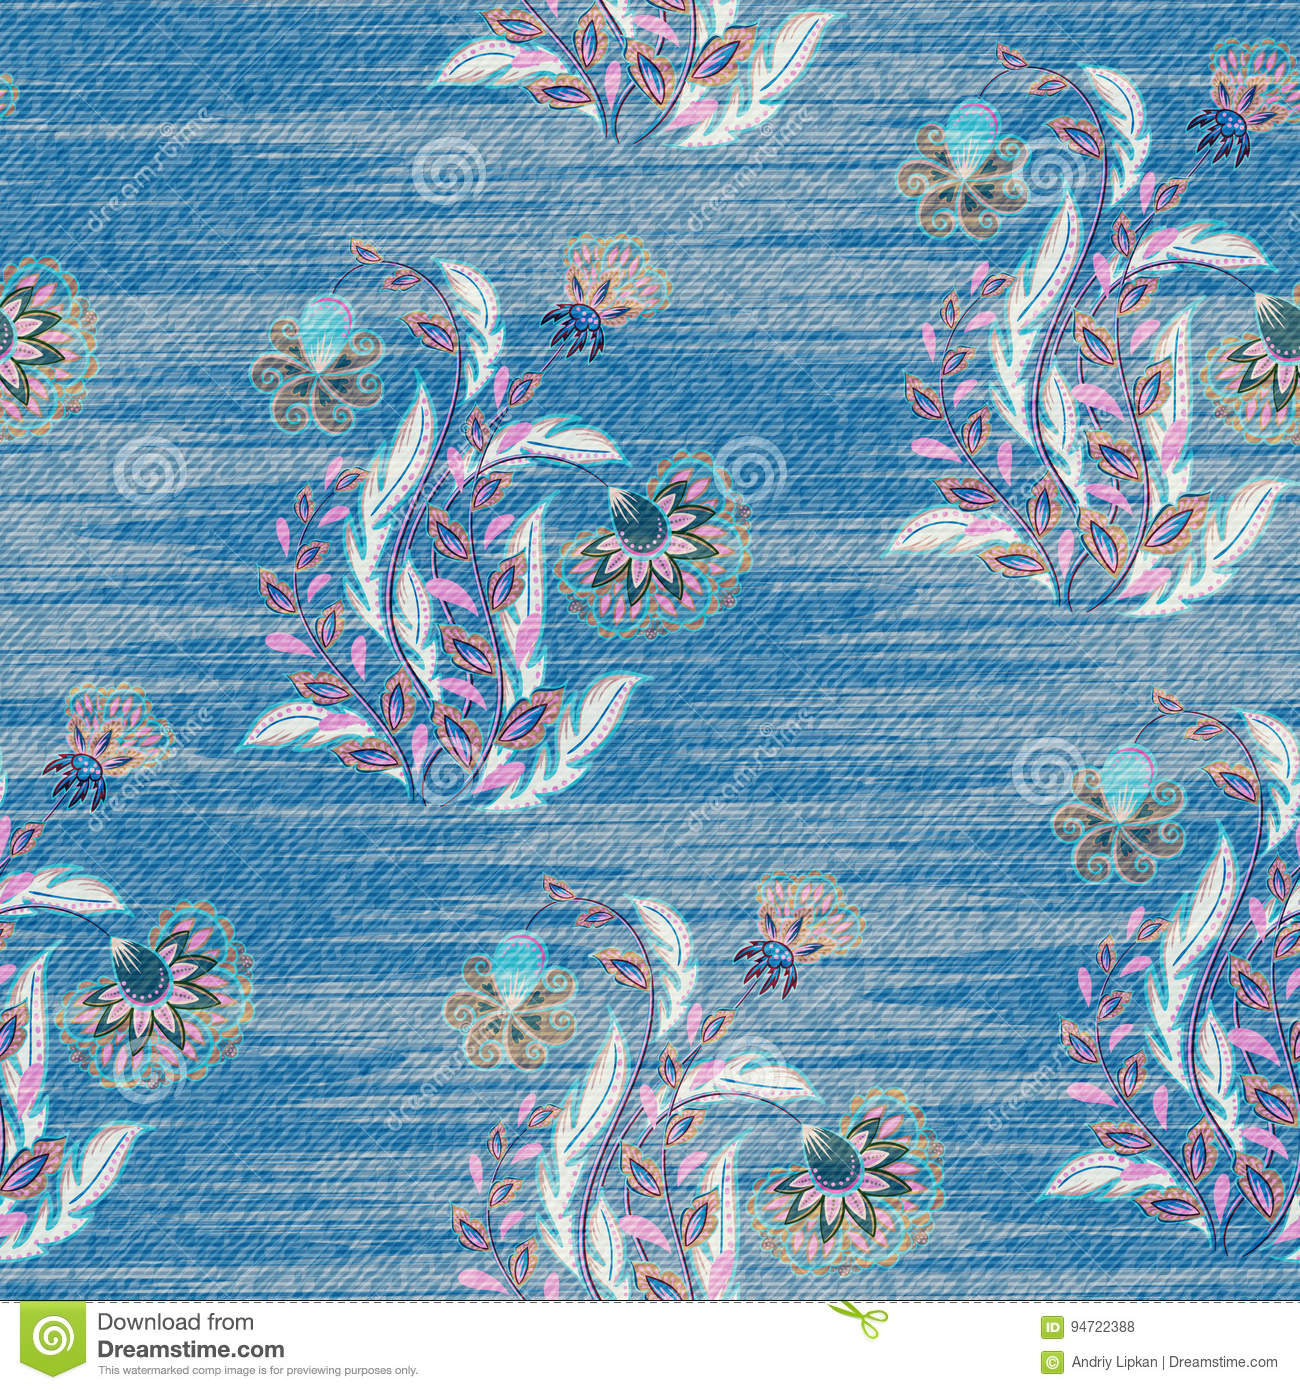 Light blue denim with colorful floral pattern. Beautiful ornamental floral seamless background. Hand draw eastern